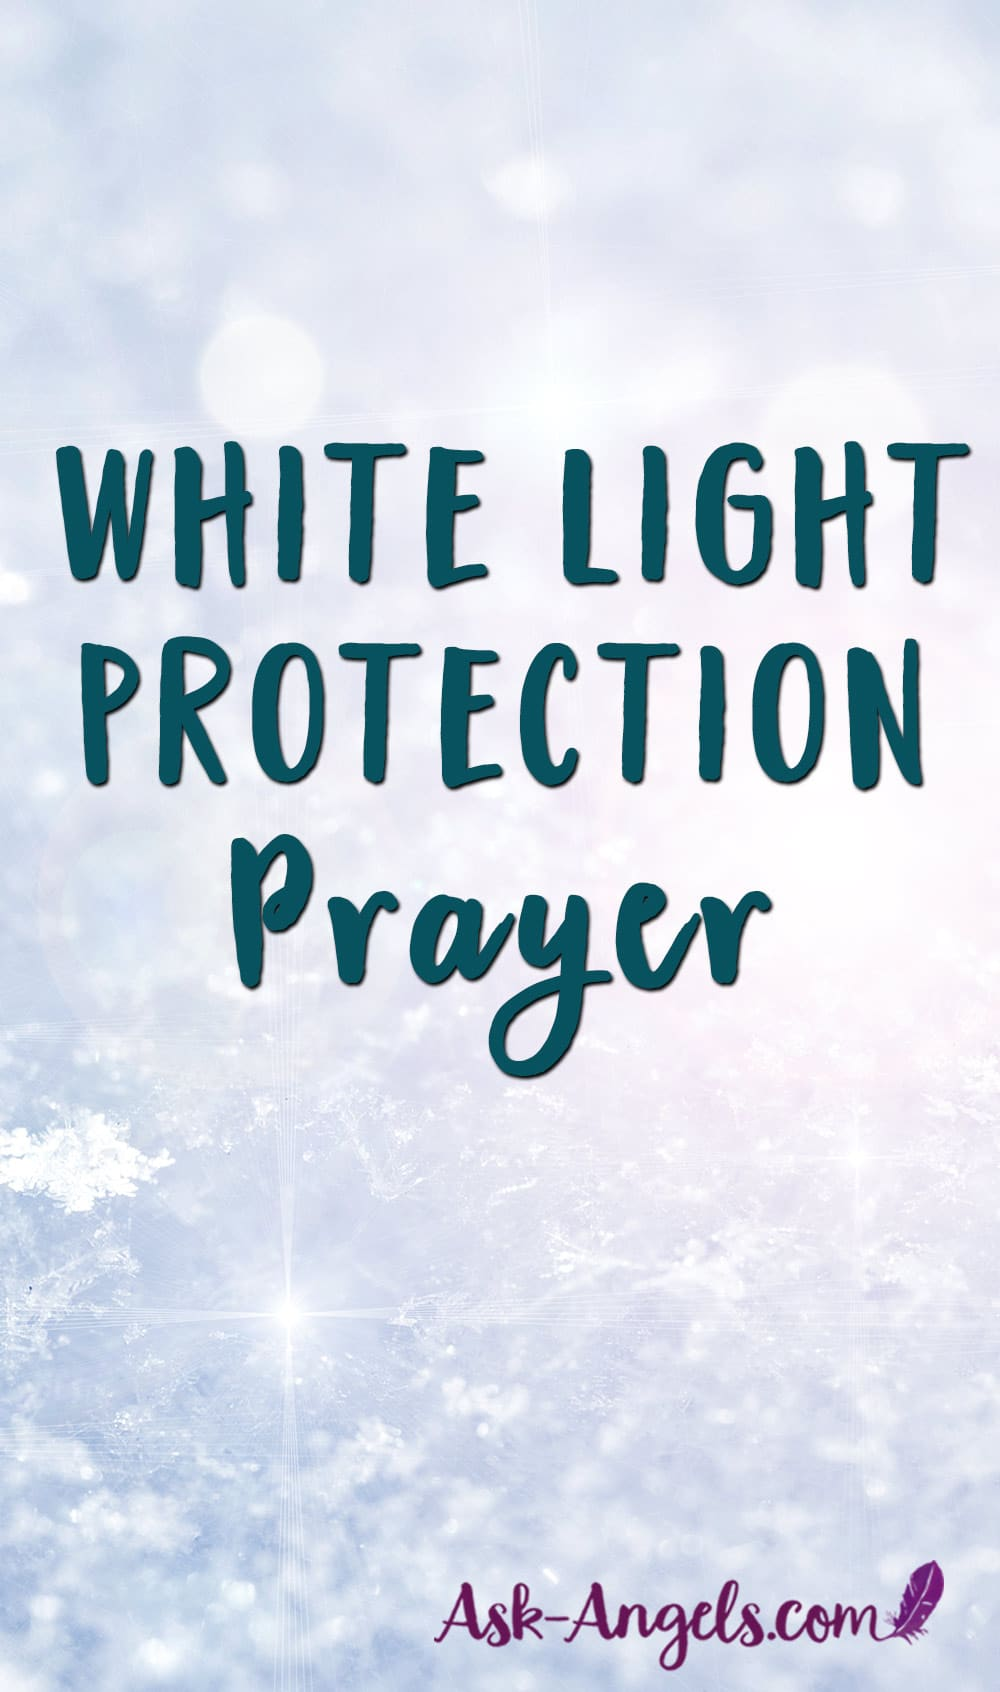 White Light Protection Prayer